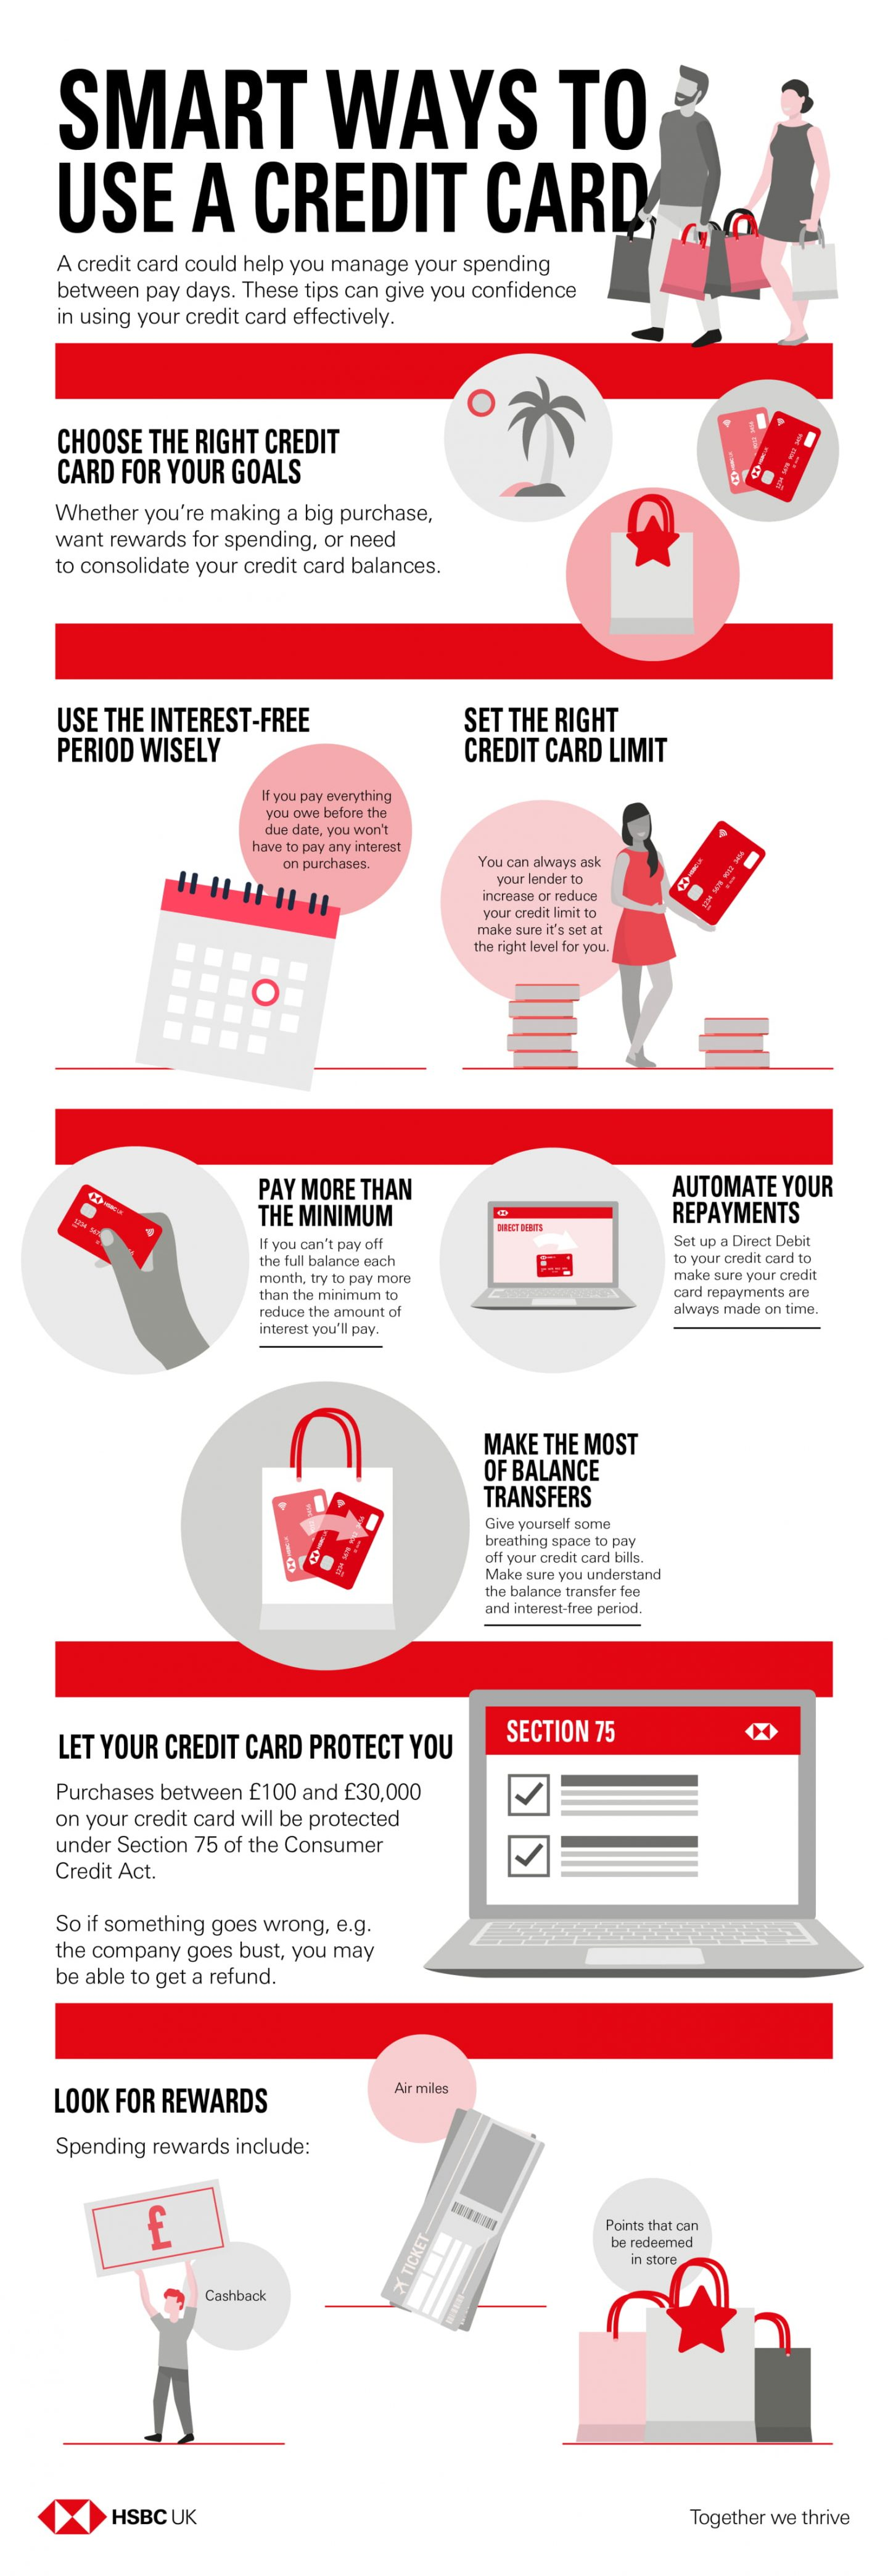 HSBC Infographic - Smart Ways to use a Credit Card